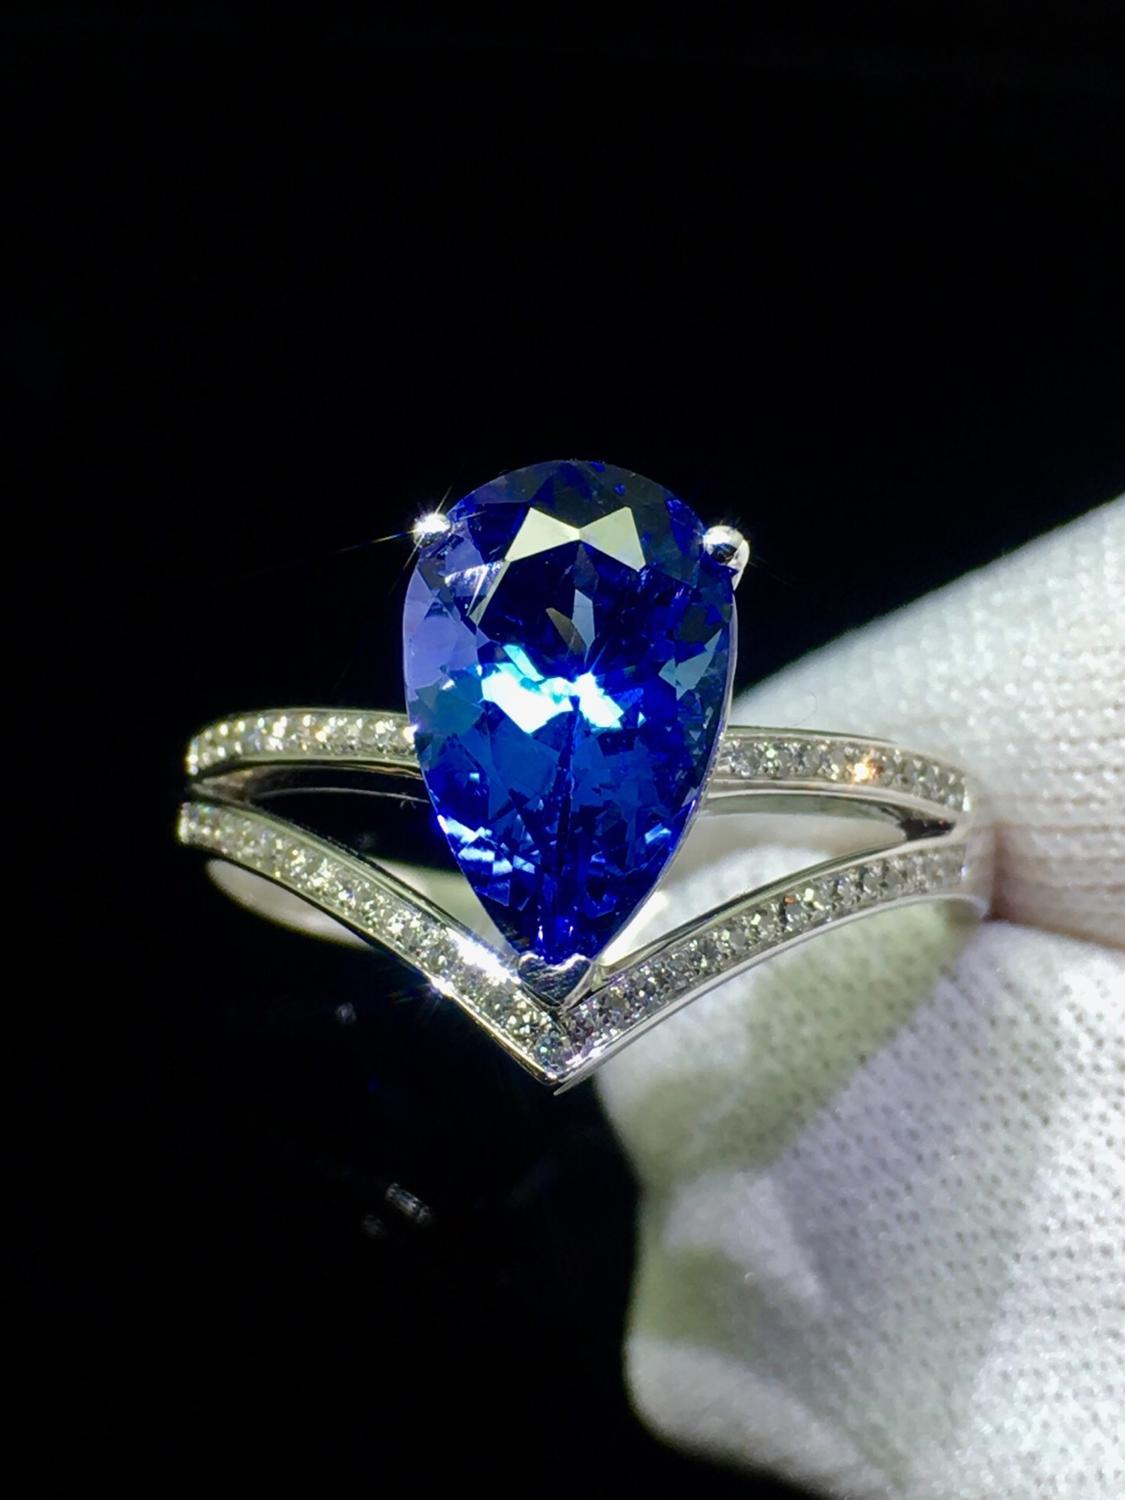 Finr Jewelry 18K White Gold 100% Natural Tanzania Origin Blue Tanzanite Gemstone 2.3ct Female's Ring for Women' Fine Rings-in Rings from Jewelry & Accessories    1